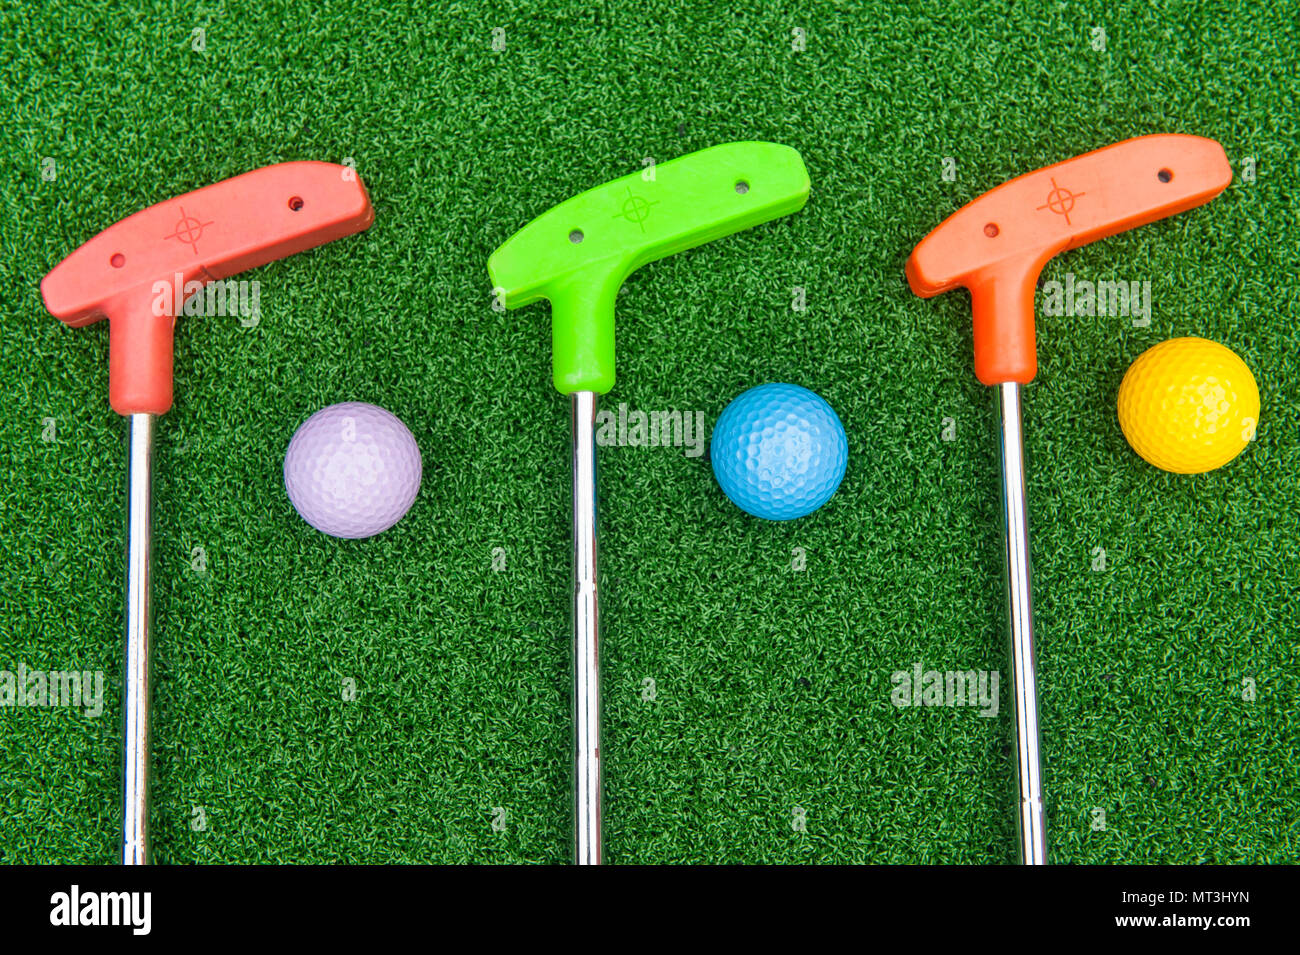 Three colorful rubber golf clubs with balls for miniature golf Stock Photo